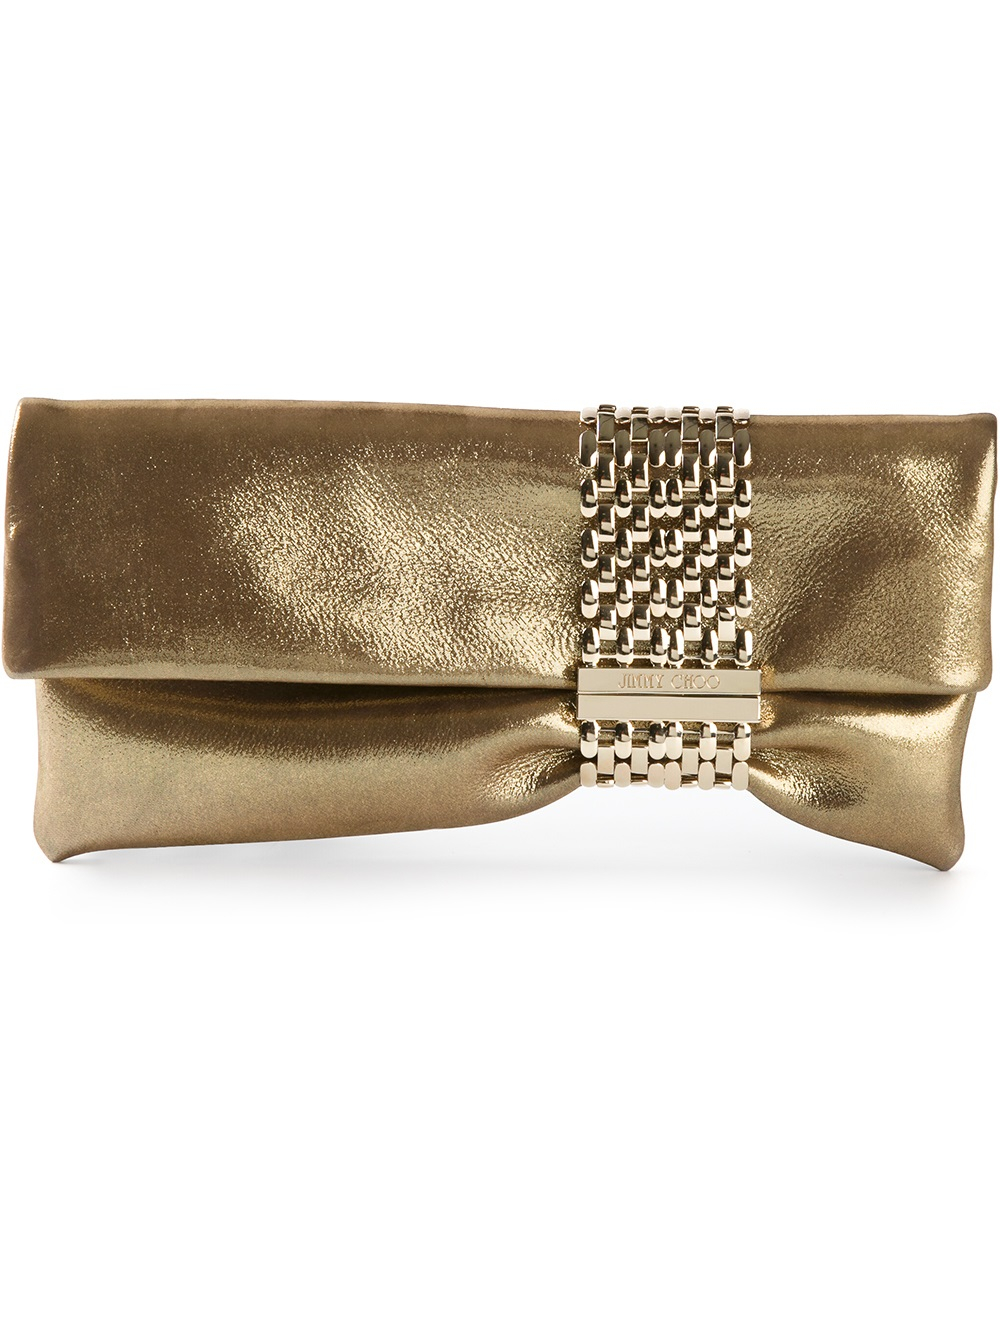 Jimmy choo Chandra Clutch Bag in Metallic | Lyst